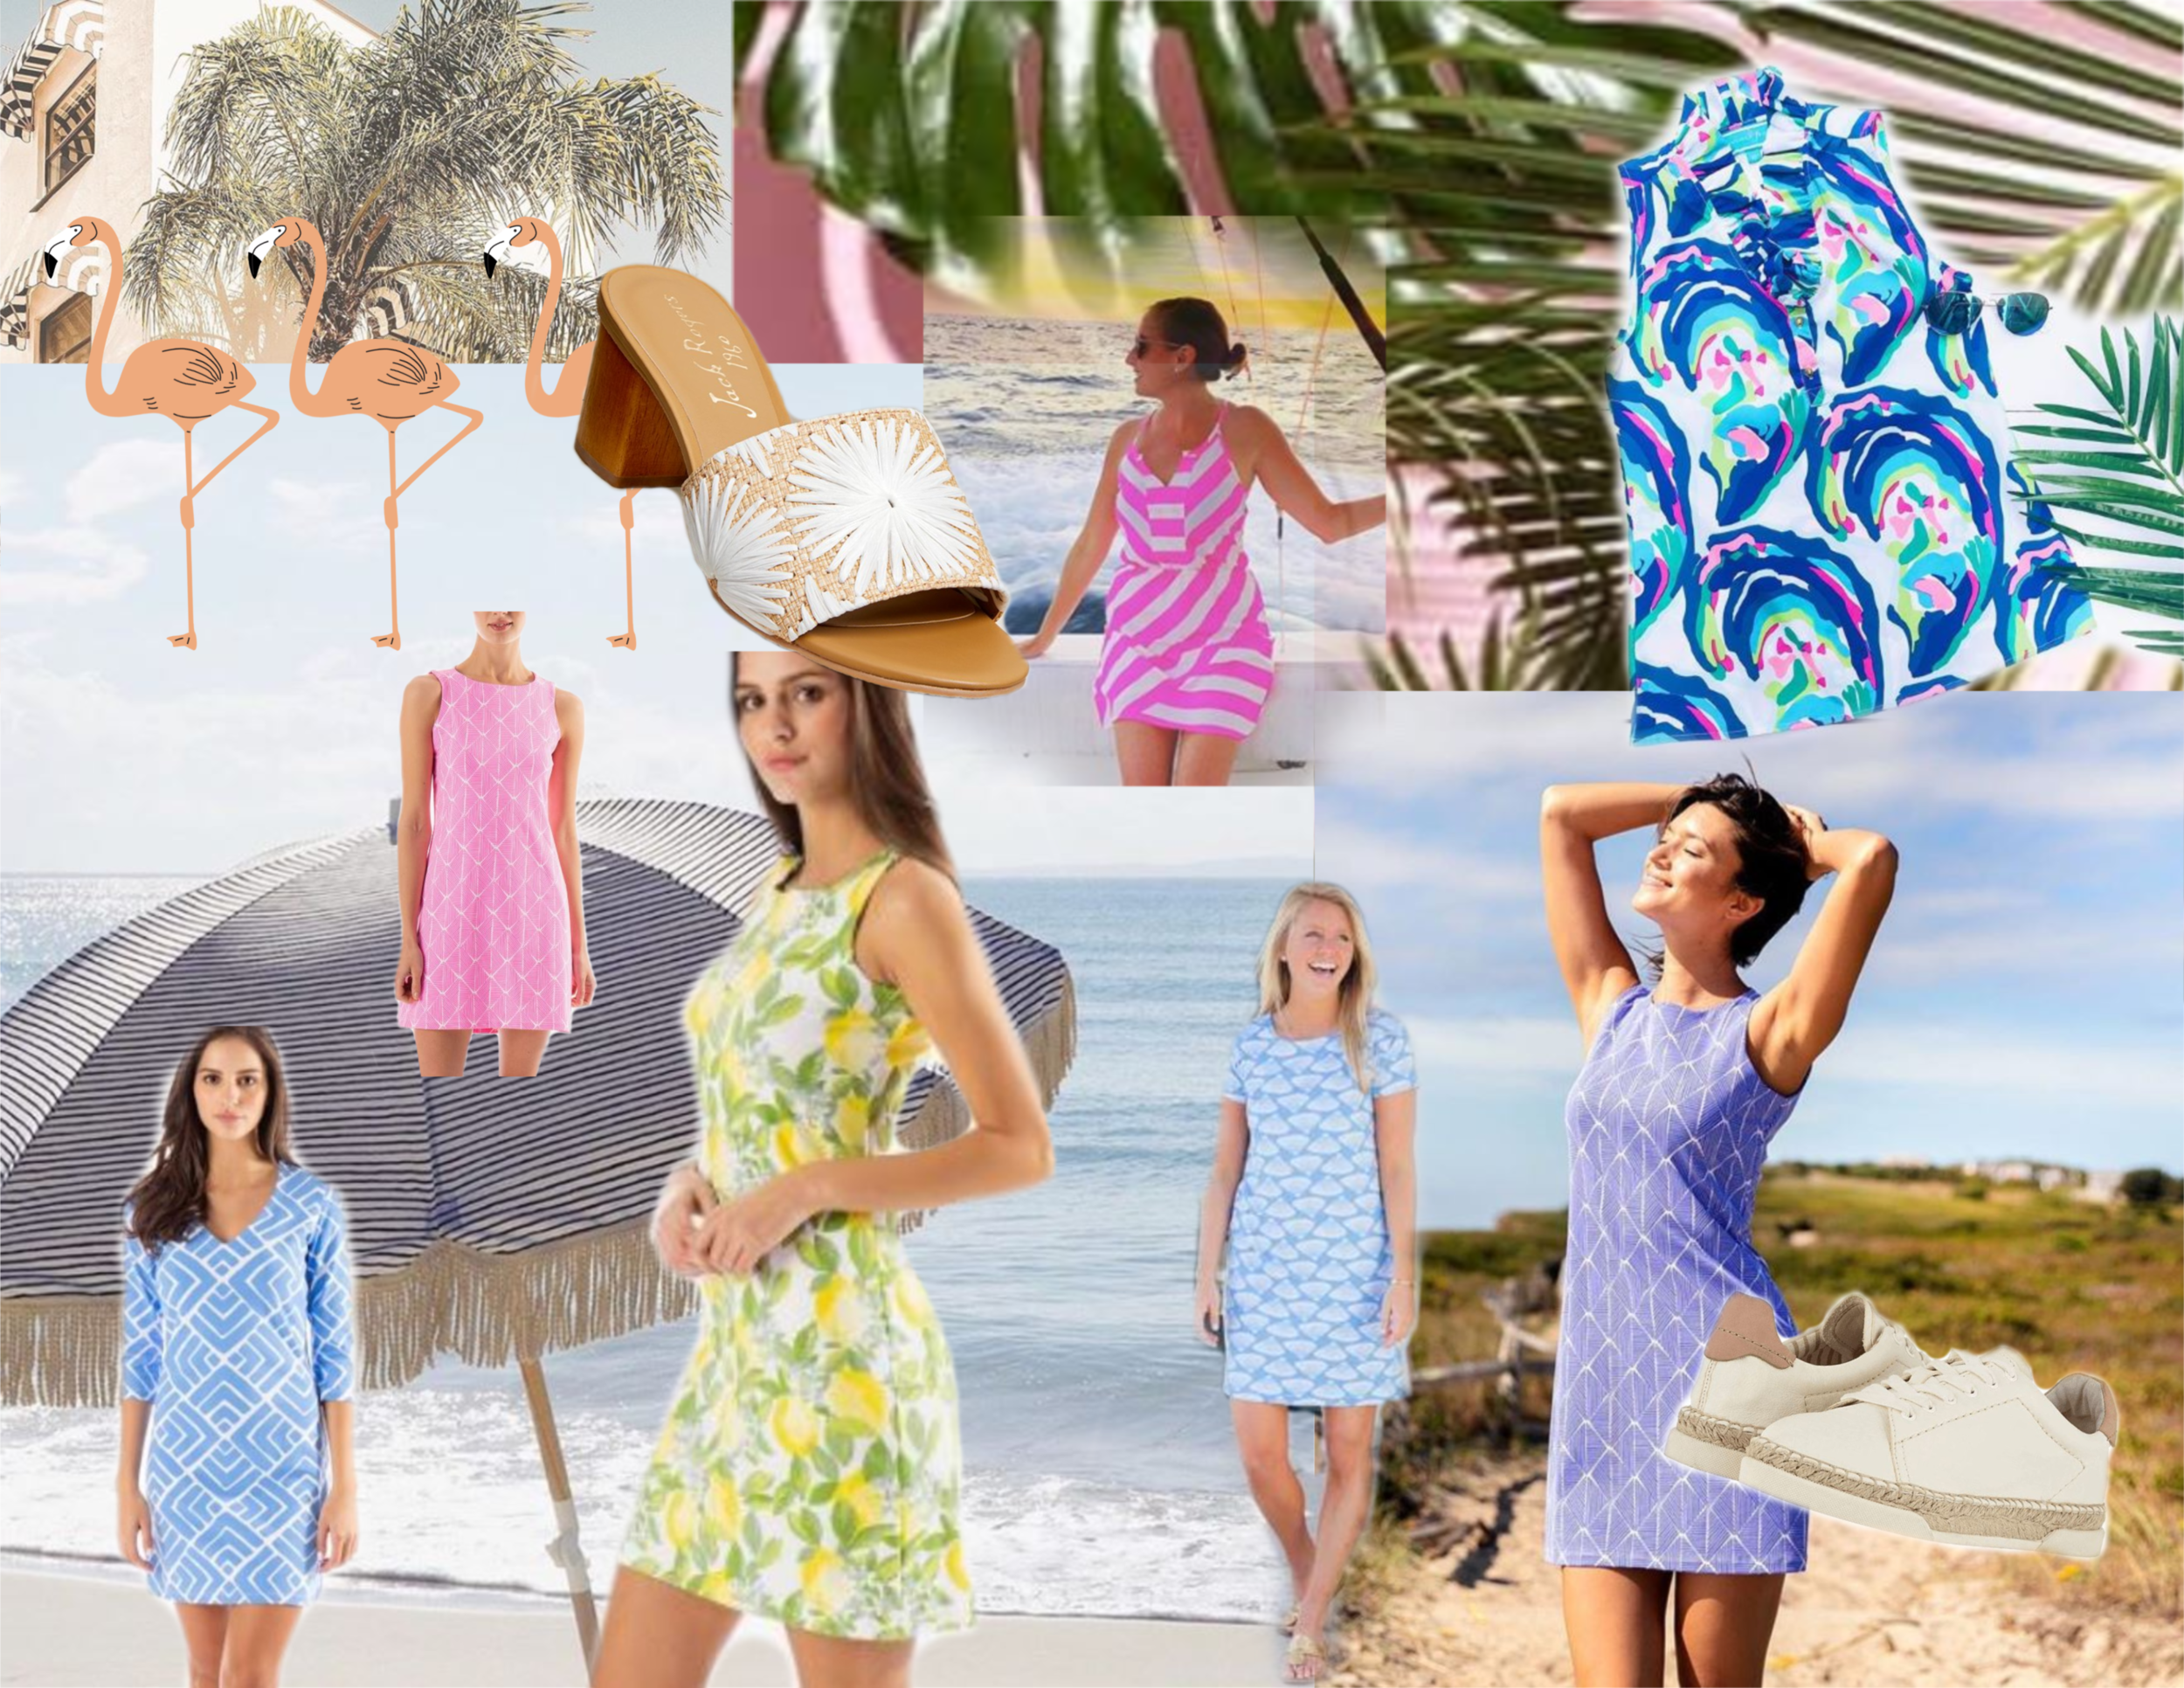 Coastal Class - It's summer 2019 on the shoreline and playful dresses with prints are in.  From the lemoncello dress to the multi-colored oyster pattern, these dresses are perfect for days around town, down by the beach, and enjoying evenings at the club.  Many with special UV protection designed into the fabric.  They are not only an easy outfit to throw on but they are also fun and stylish.  Pair it with our raffia trainers for a casual look, or the natural sandals to make it more chic.